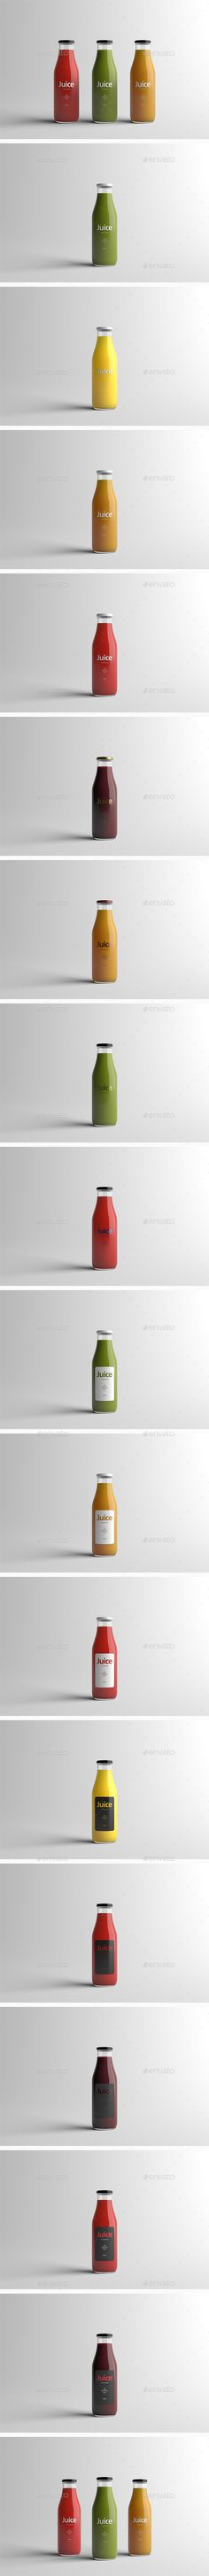 Juice Bottle Packaging MockUp — Photoshop PSD #foil #realistic • Available here → https://graphicriver.net/item/juice-bottle-packaging-mockup/15897481?ref=pxcr